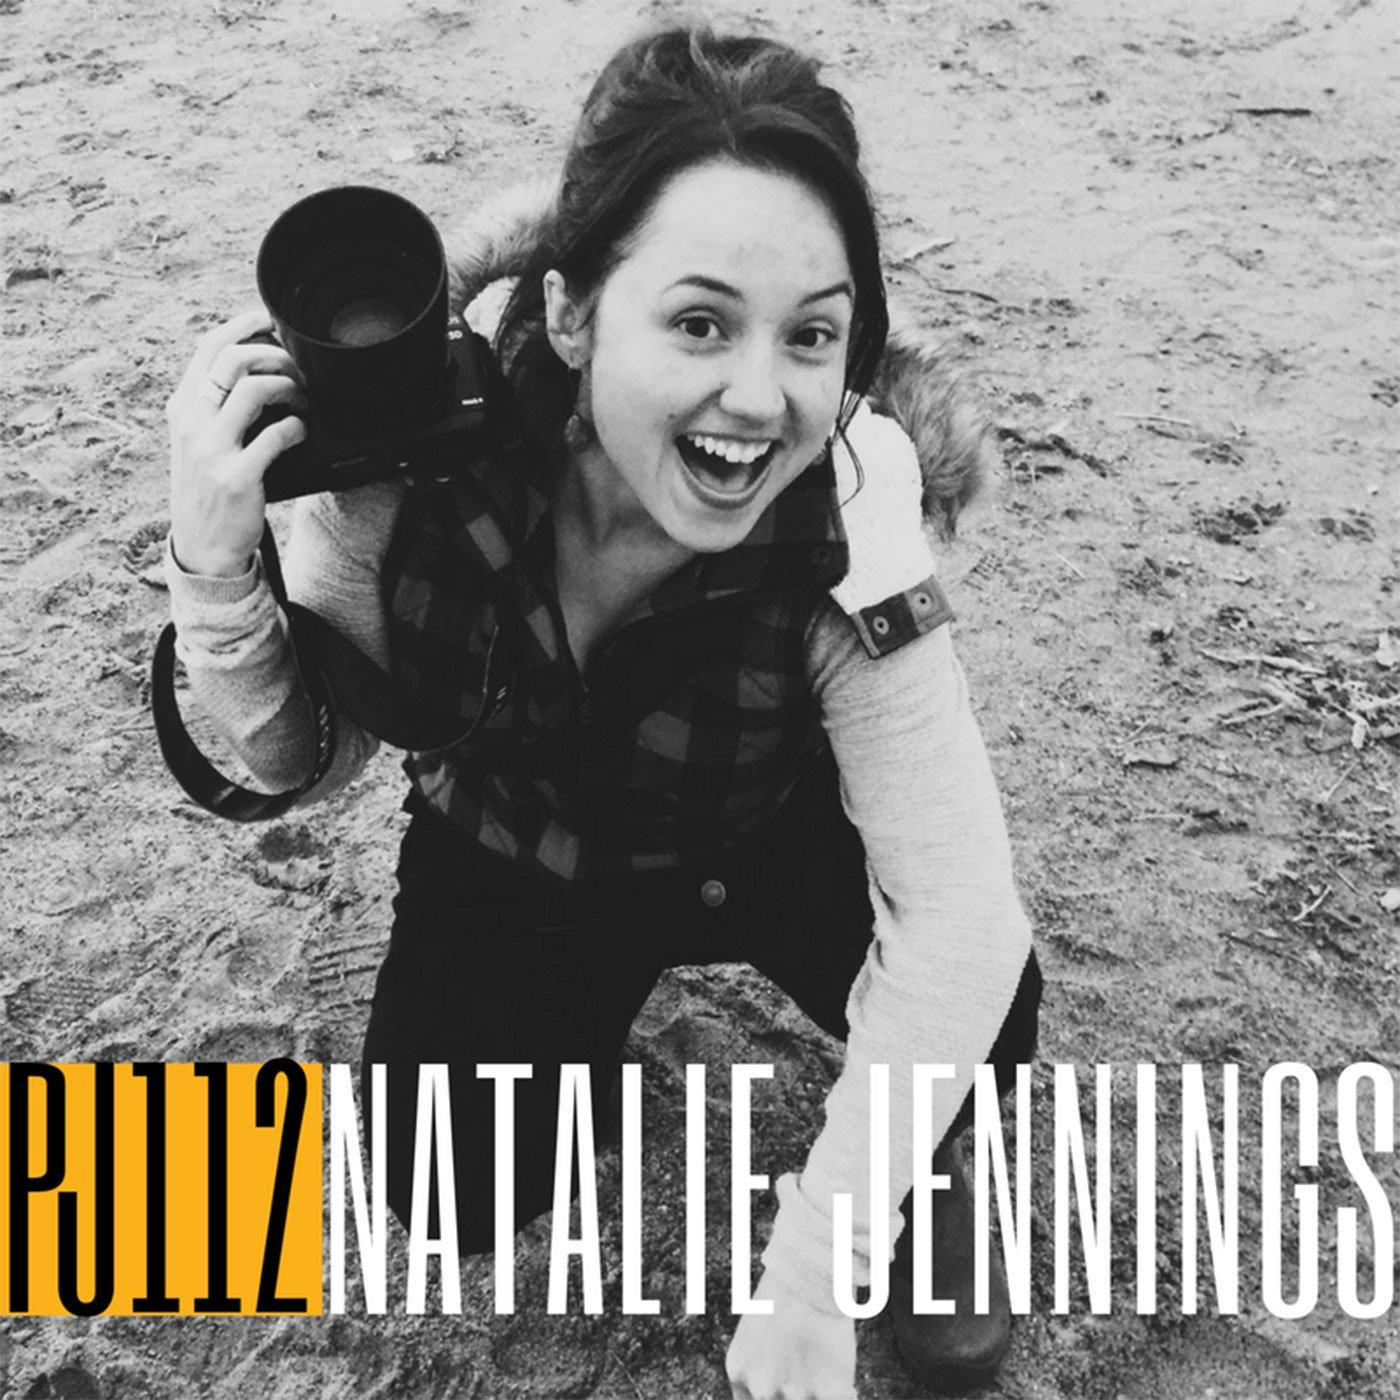 112 Natalie Jennings | Getting a Grant for Your Podcast